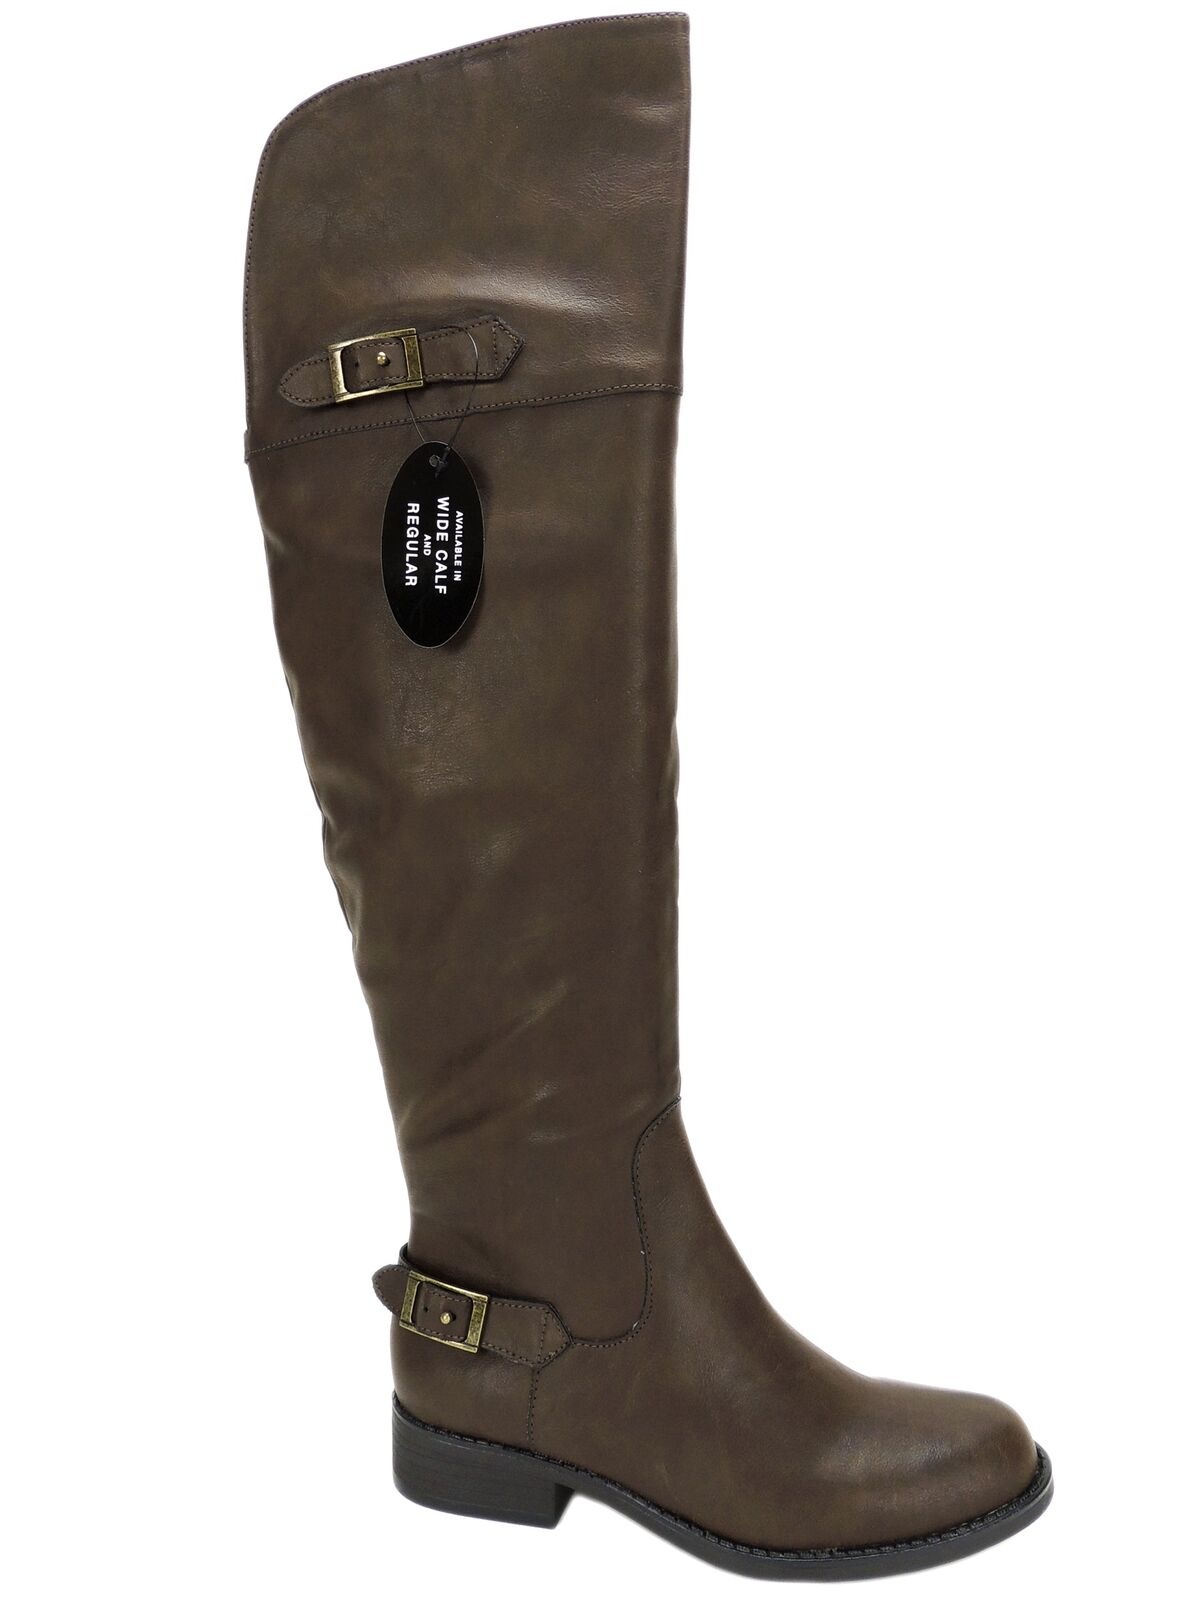 American Rag Women's Ada Over-the-Knee Boots Riding Brown Size 5 M